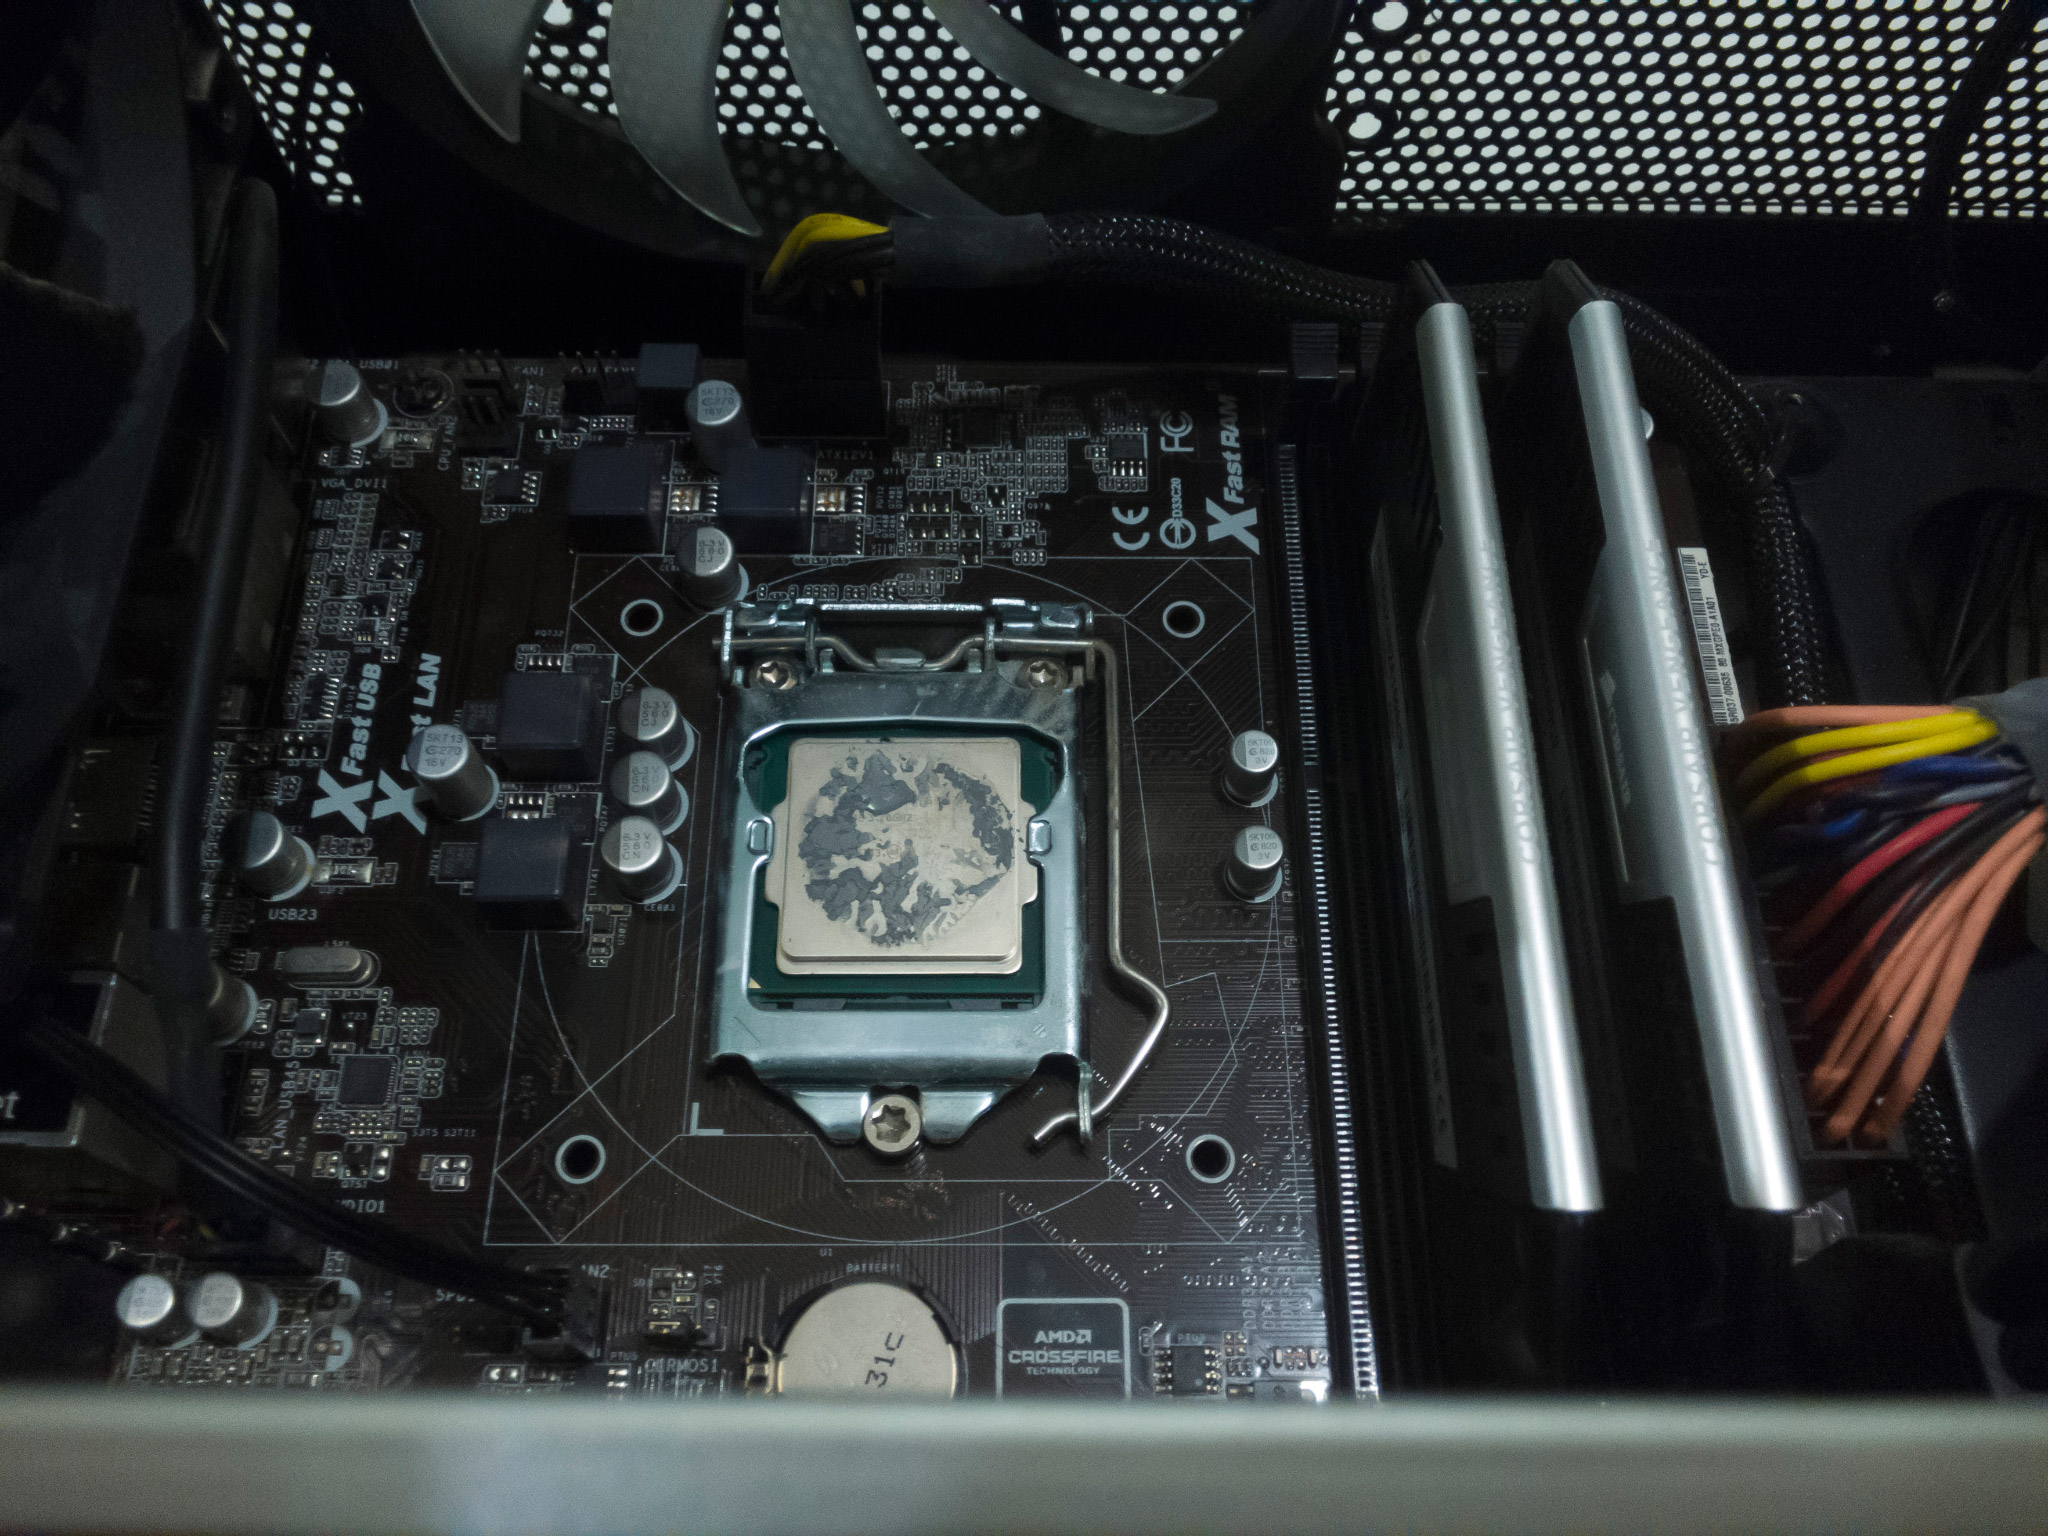 Replacing the thermal compound from a boxed Intel CPU fan • blog